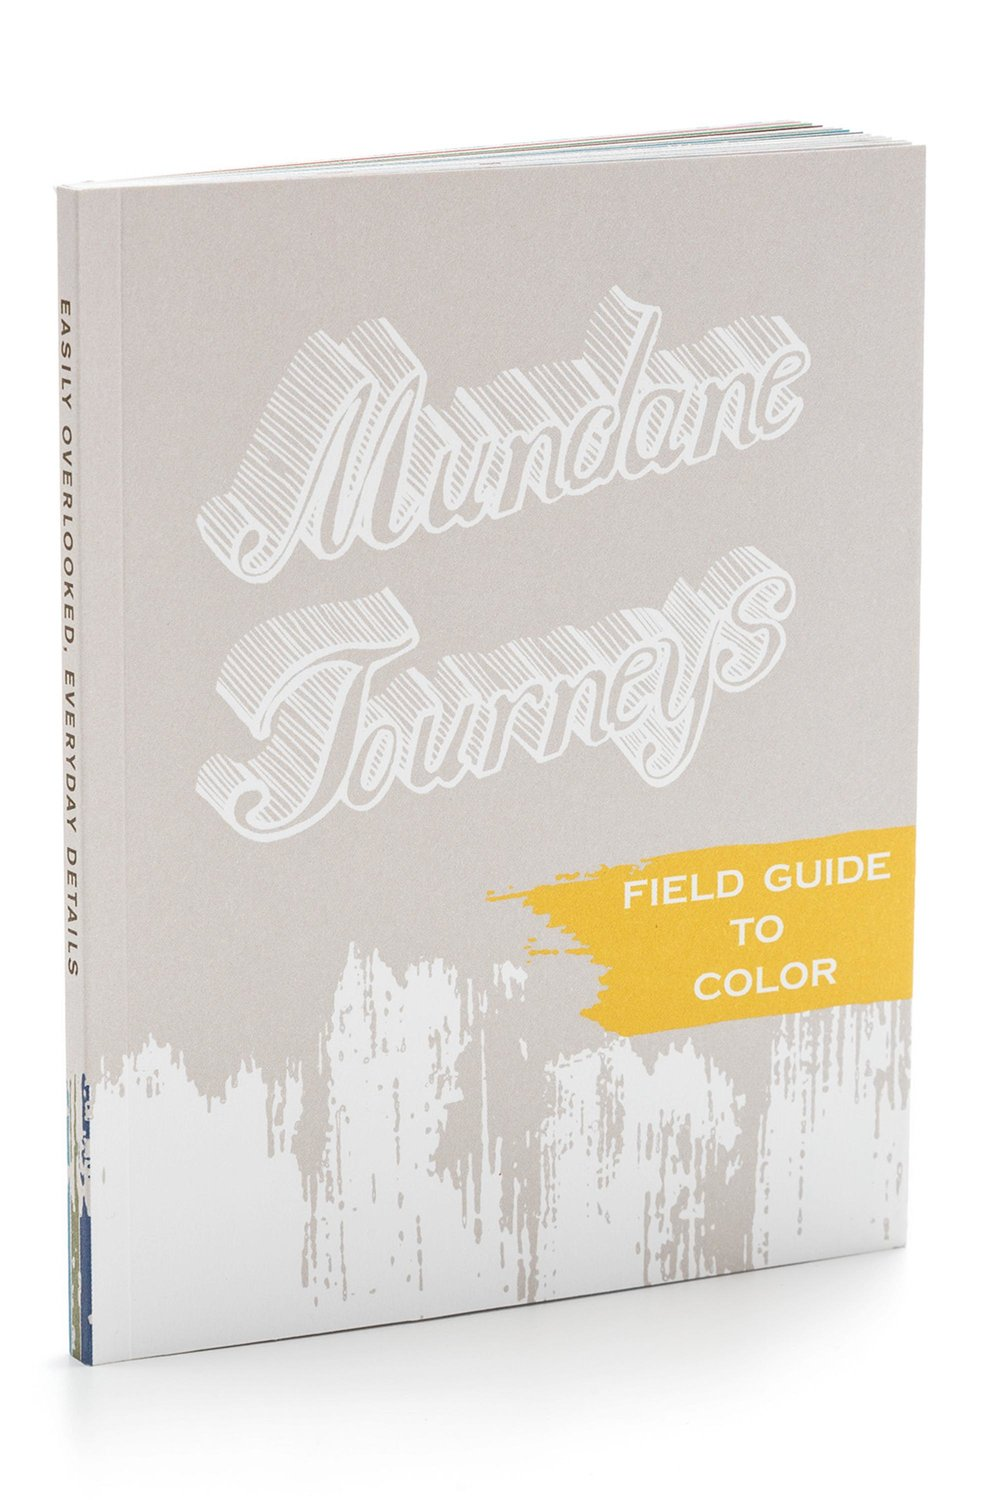 64 page guide to San Francisco featuring a sampling of color-themed Mundane Journeys. Created by Kate Pocrass. Illustrated by Kate Pocrass & Patrick J. Kavanagh. Self-published with support by a grant from the San Francisco Arts Commission.